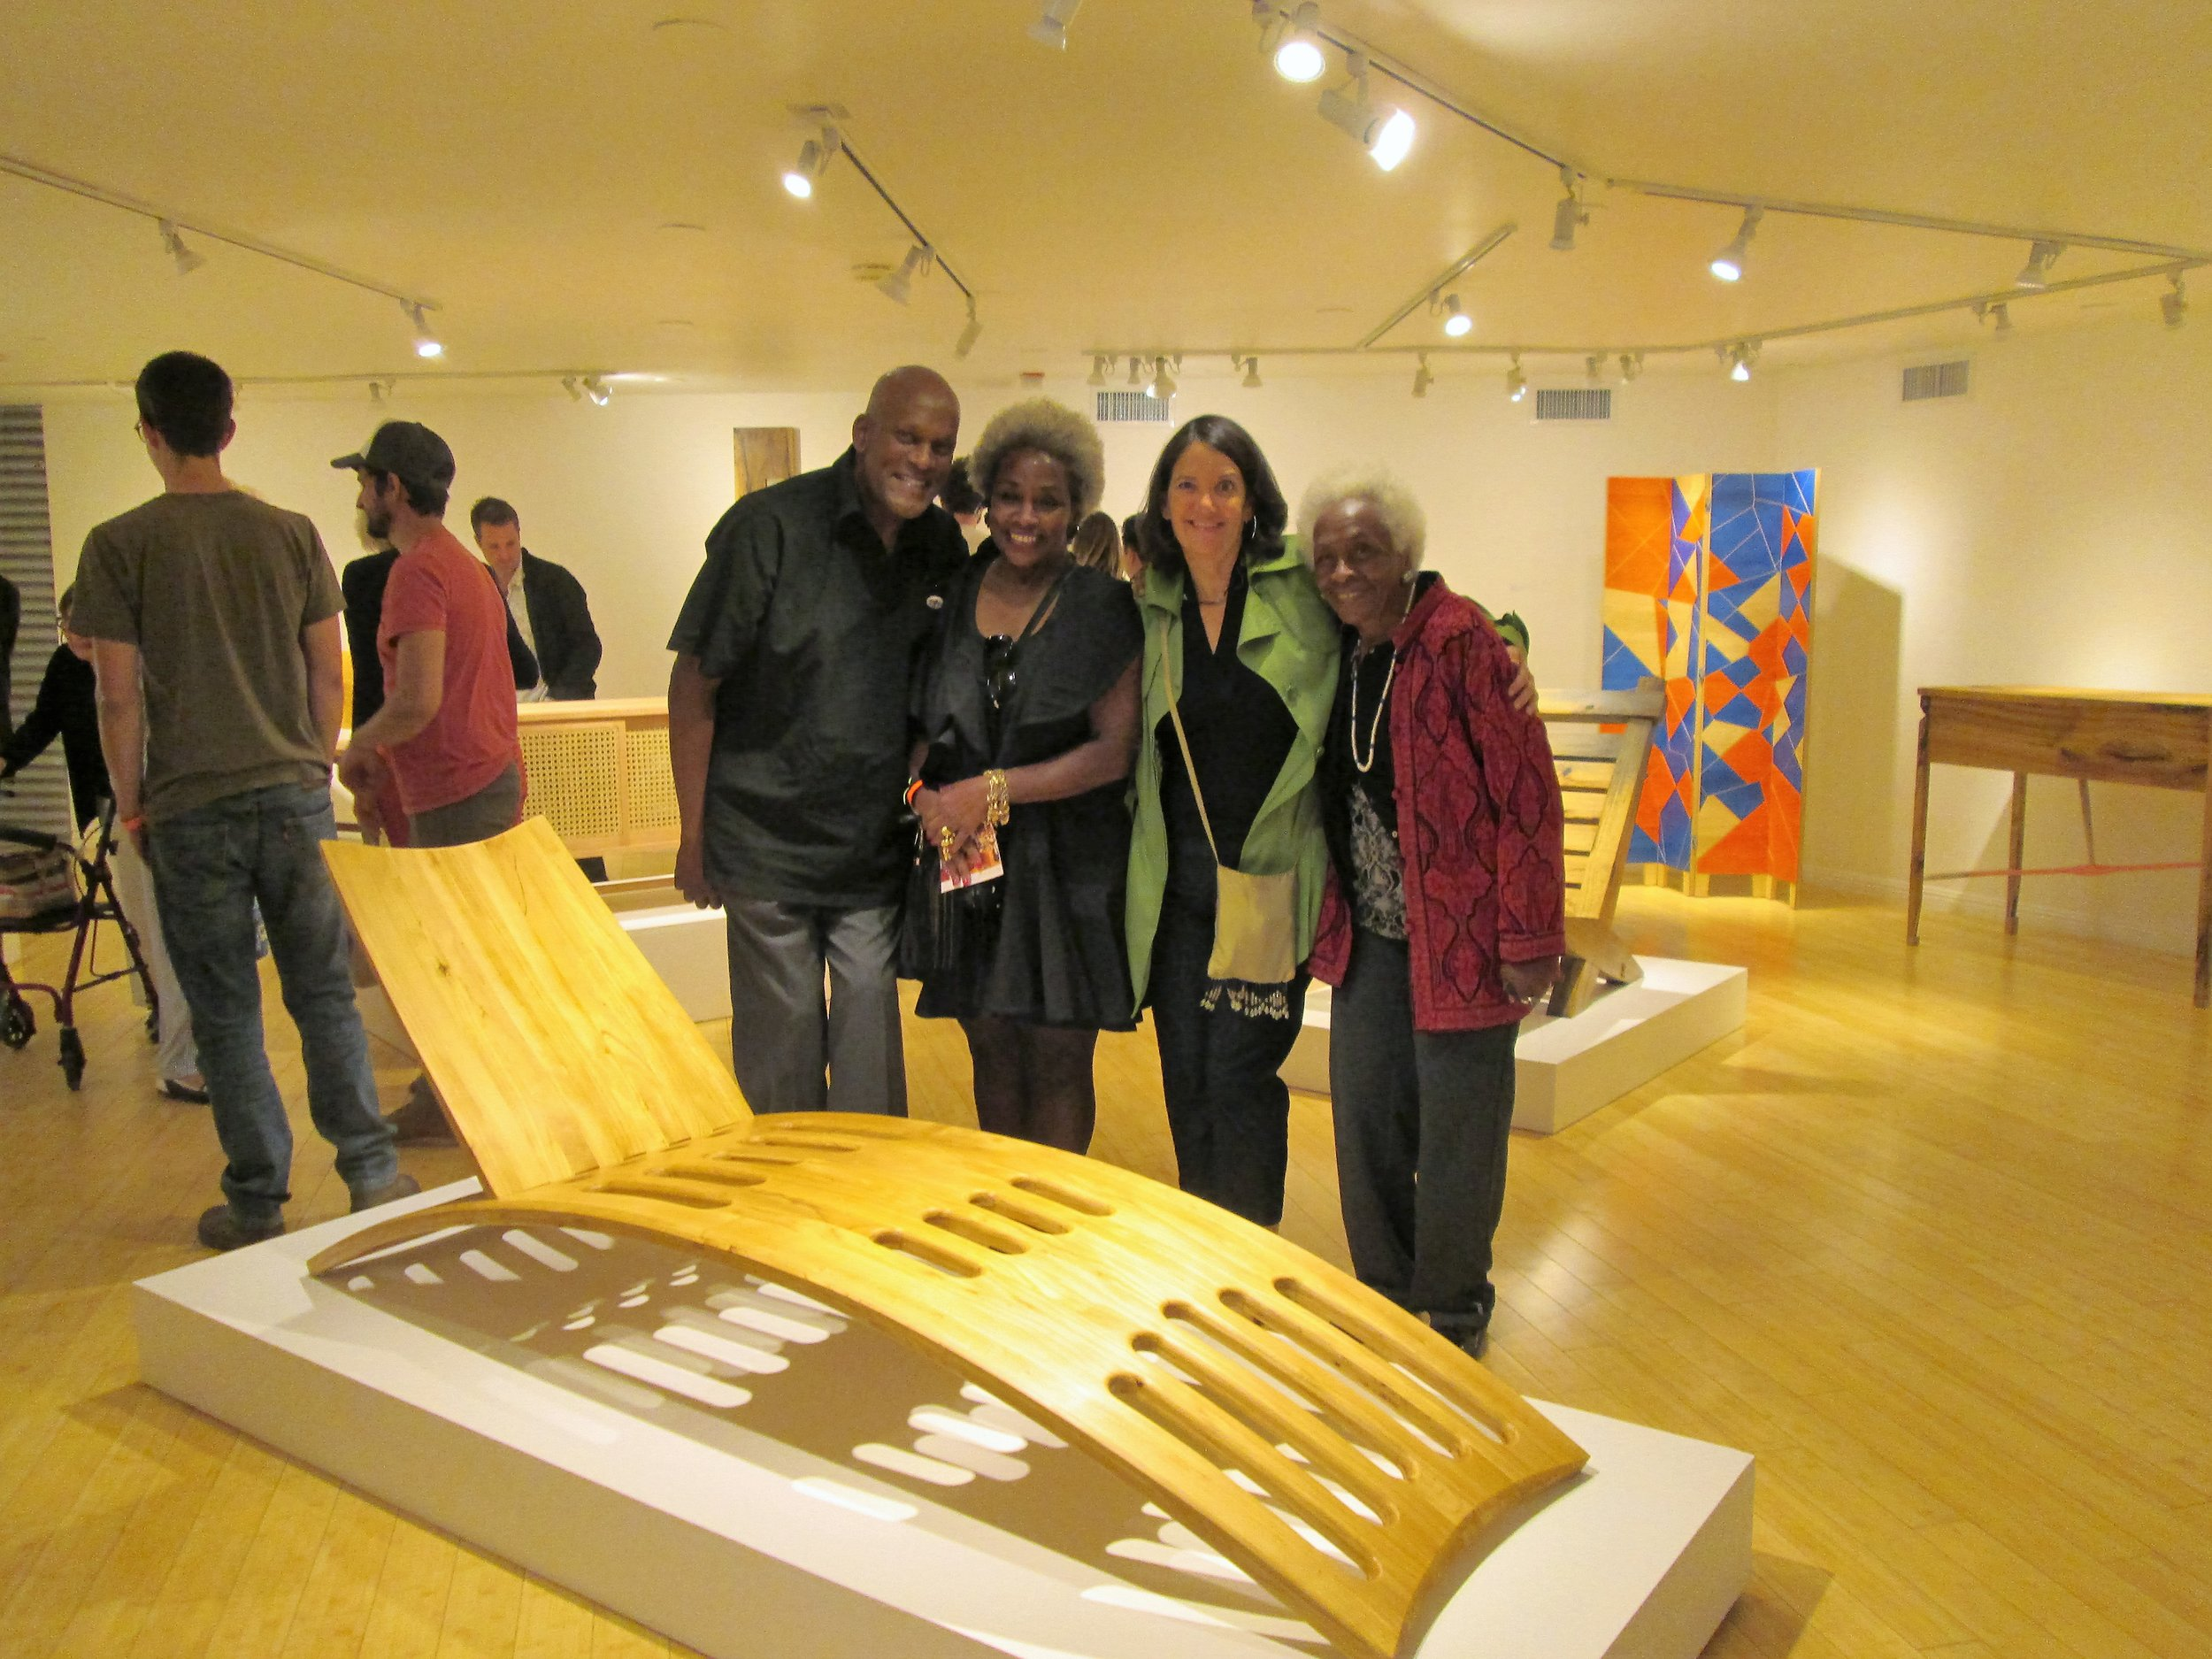 """May 28, 2016  """"Windfall"""" Opening Reception. The exhibition featured work by the members of The Box Collective who salvaged trees that were uprooted during a violent windstorm in the San Gabriel Valley several years earlier. From left to right, me, my sister Linda Greene, my wife Kathleen, and my mother Mariette Greene."""